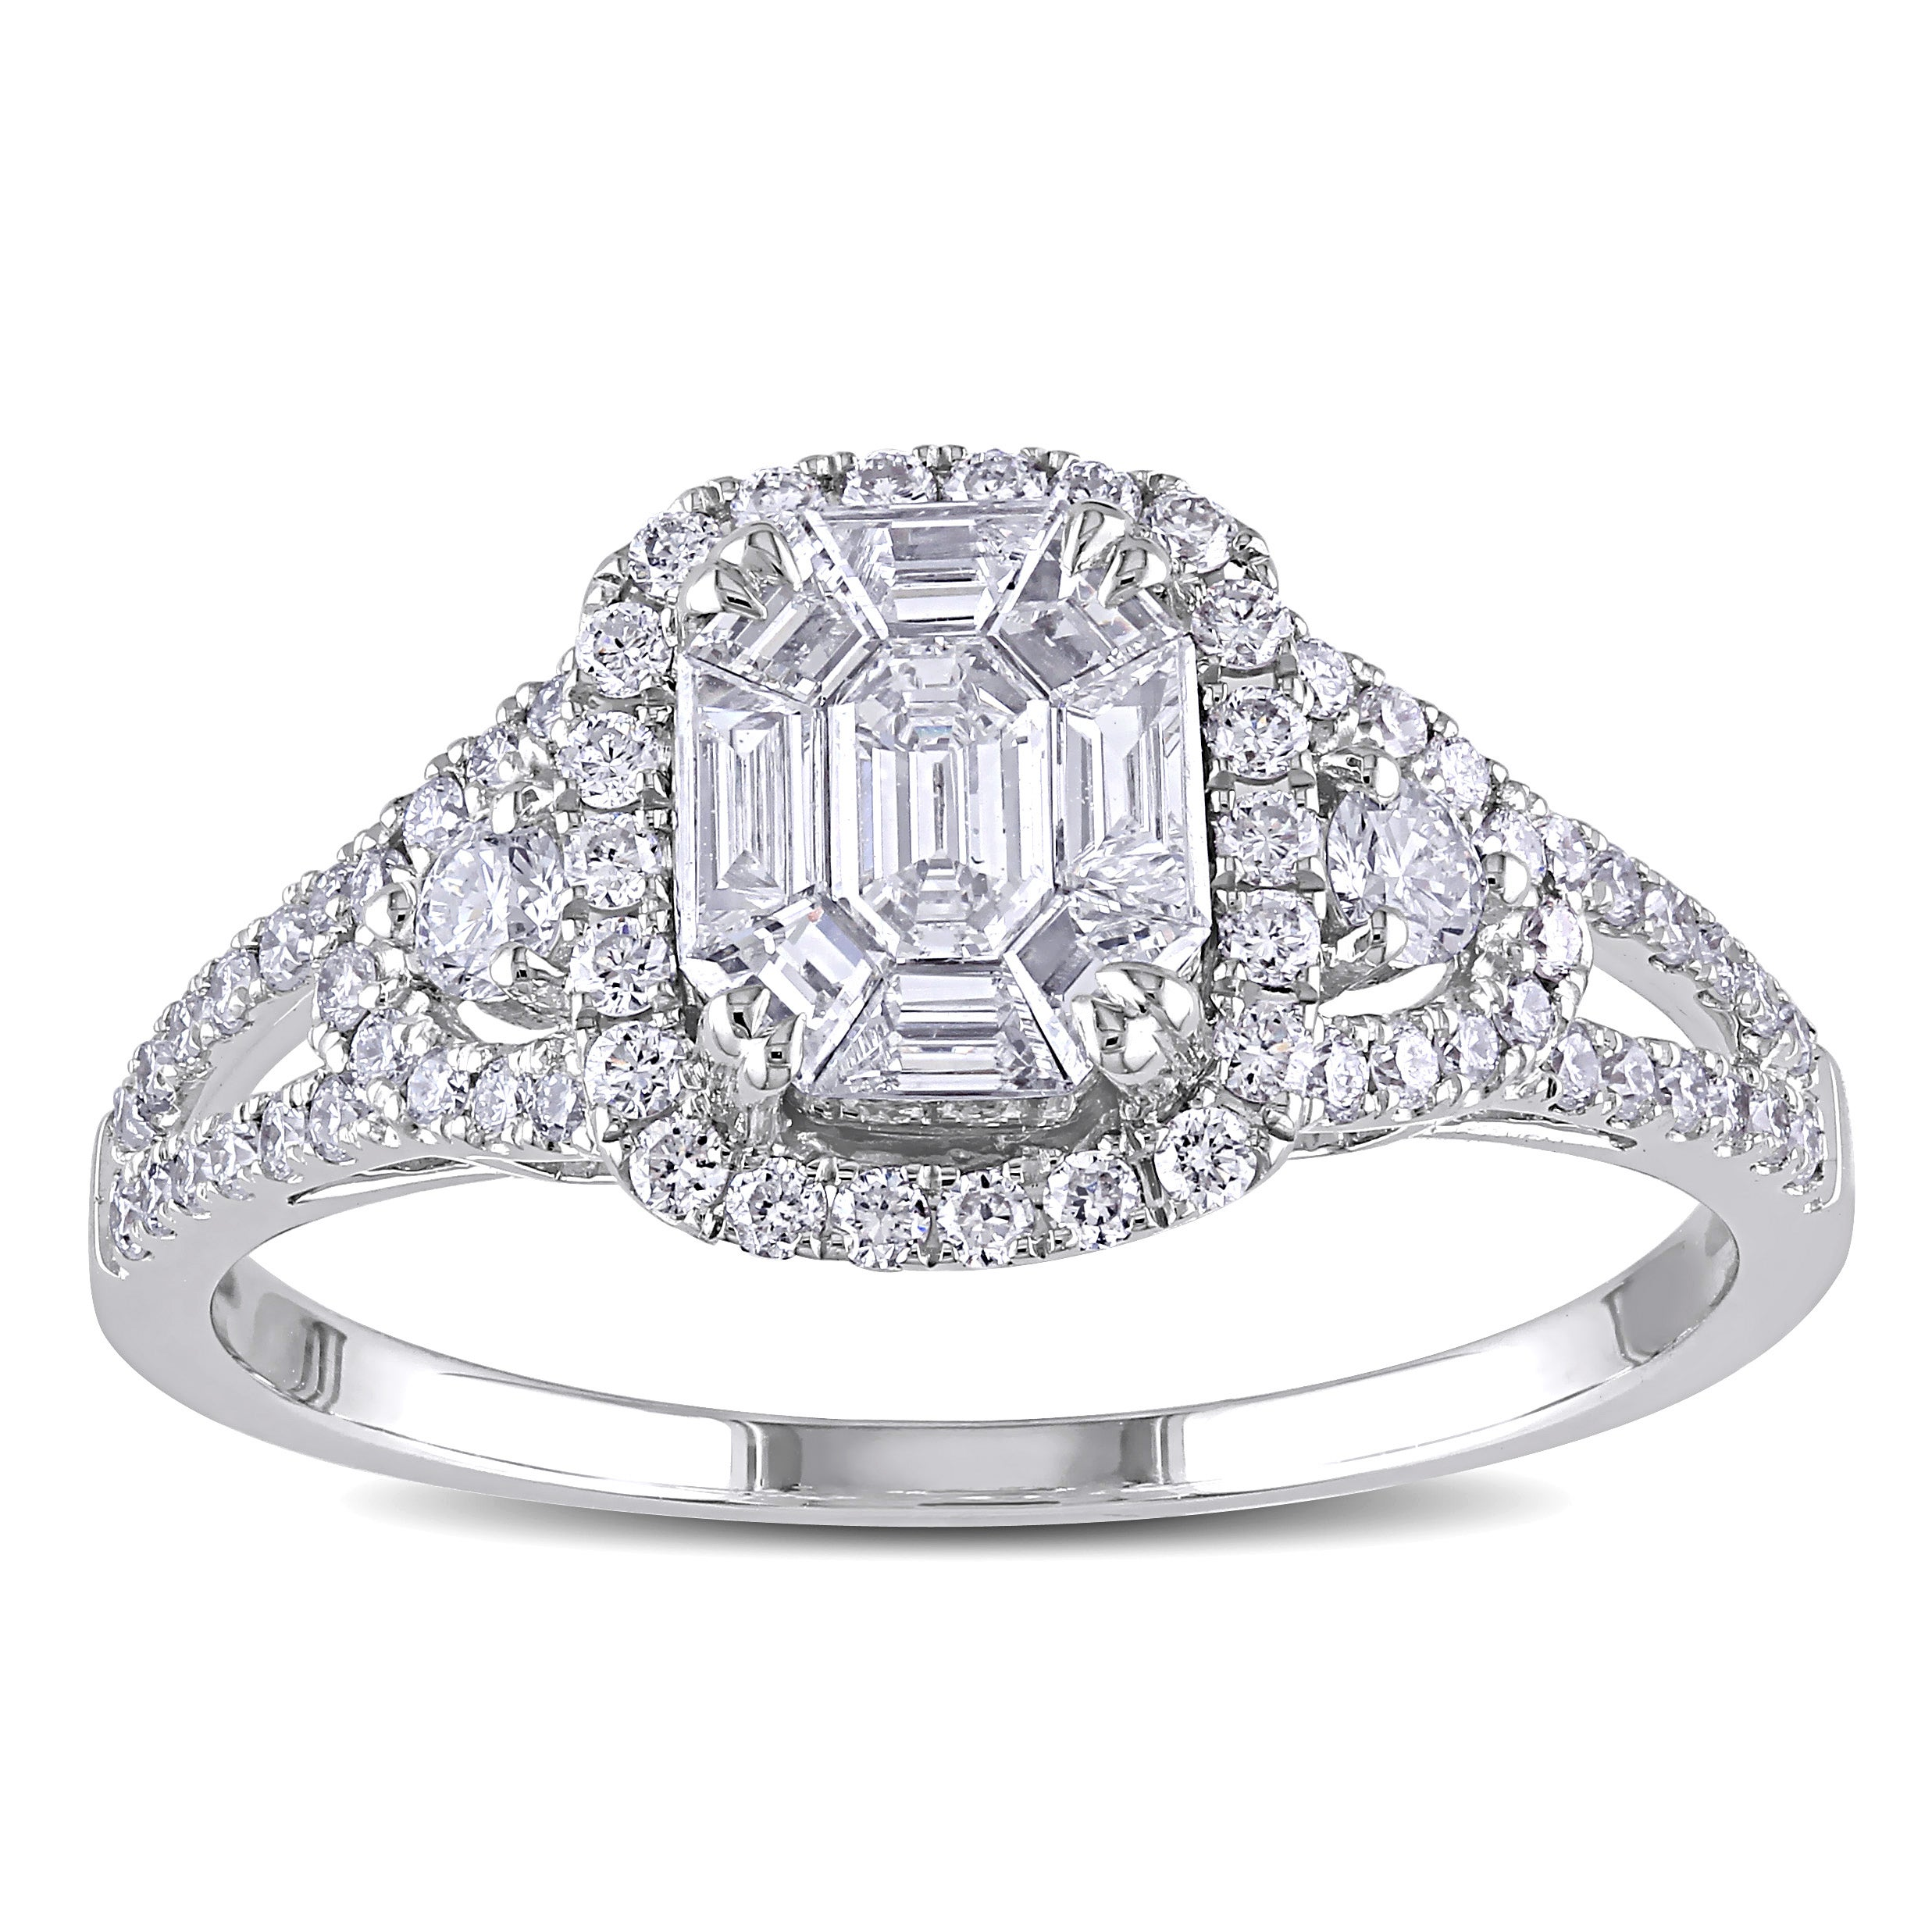 Miadora Signature Collection 18k White Gold 7/8ct TDW Diamond Composite Engagement Ring (G-H, SI1-SI2)